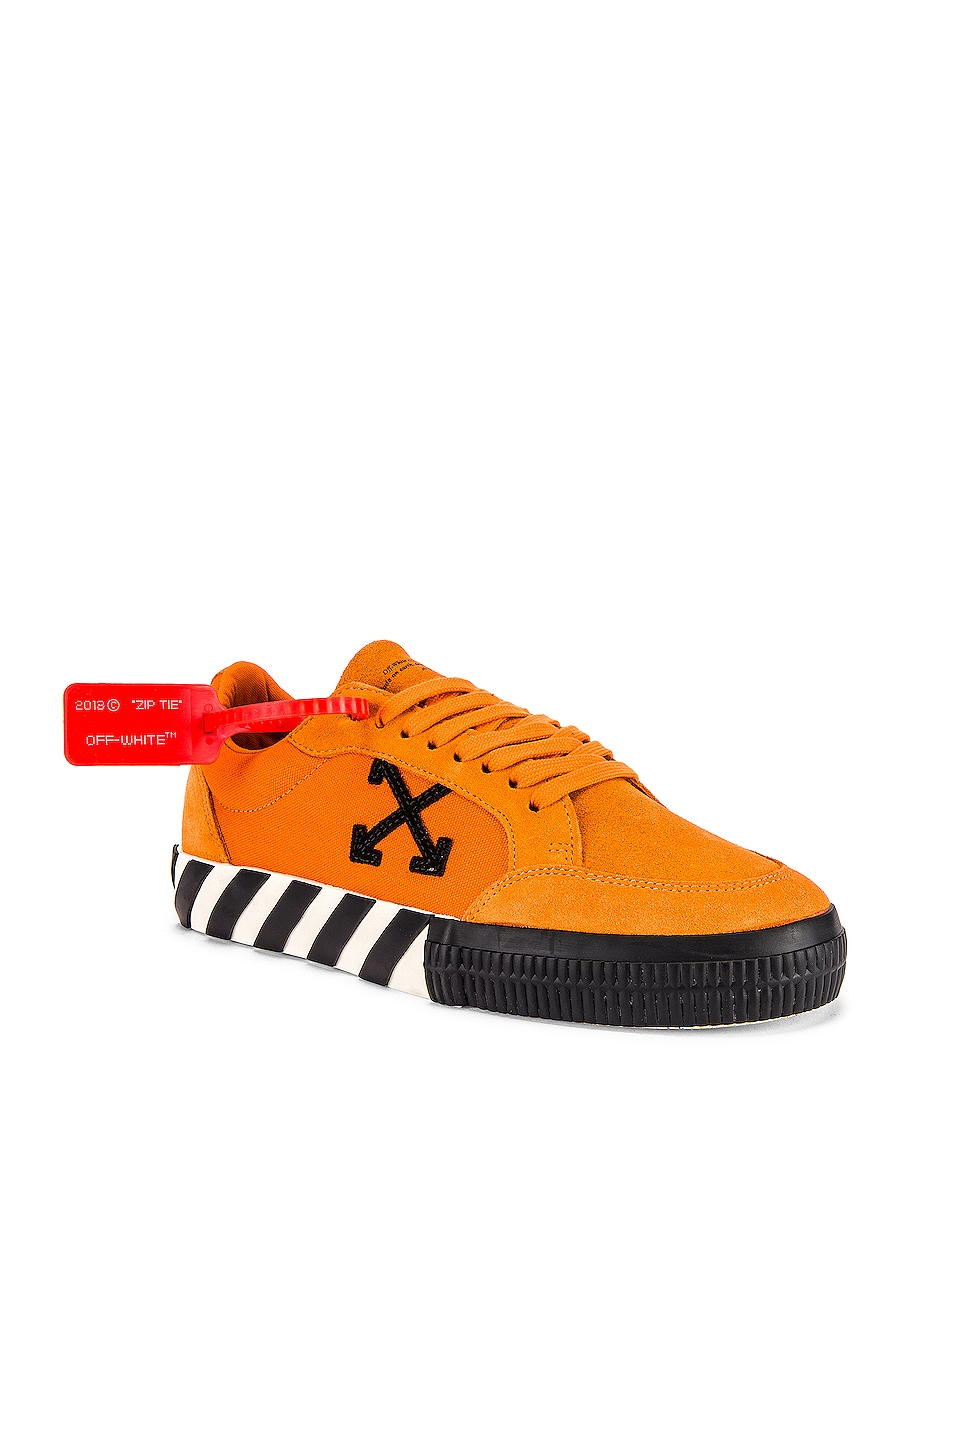 Image 1 of OFF-WHITE Low Vulcanized Sneaker in Orange & Black